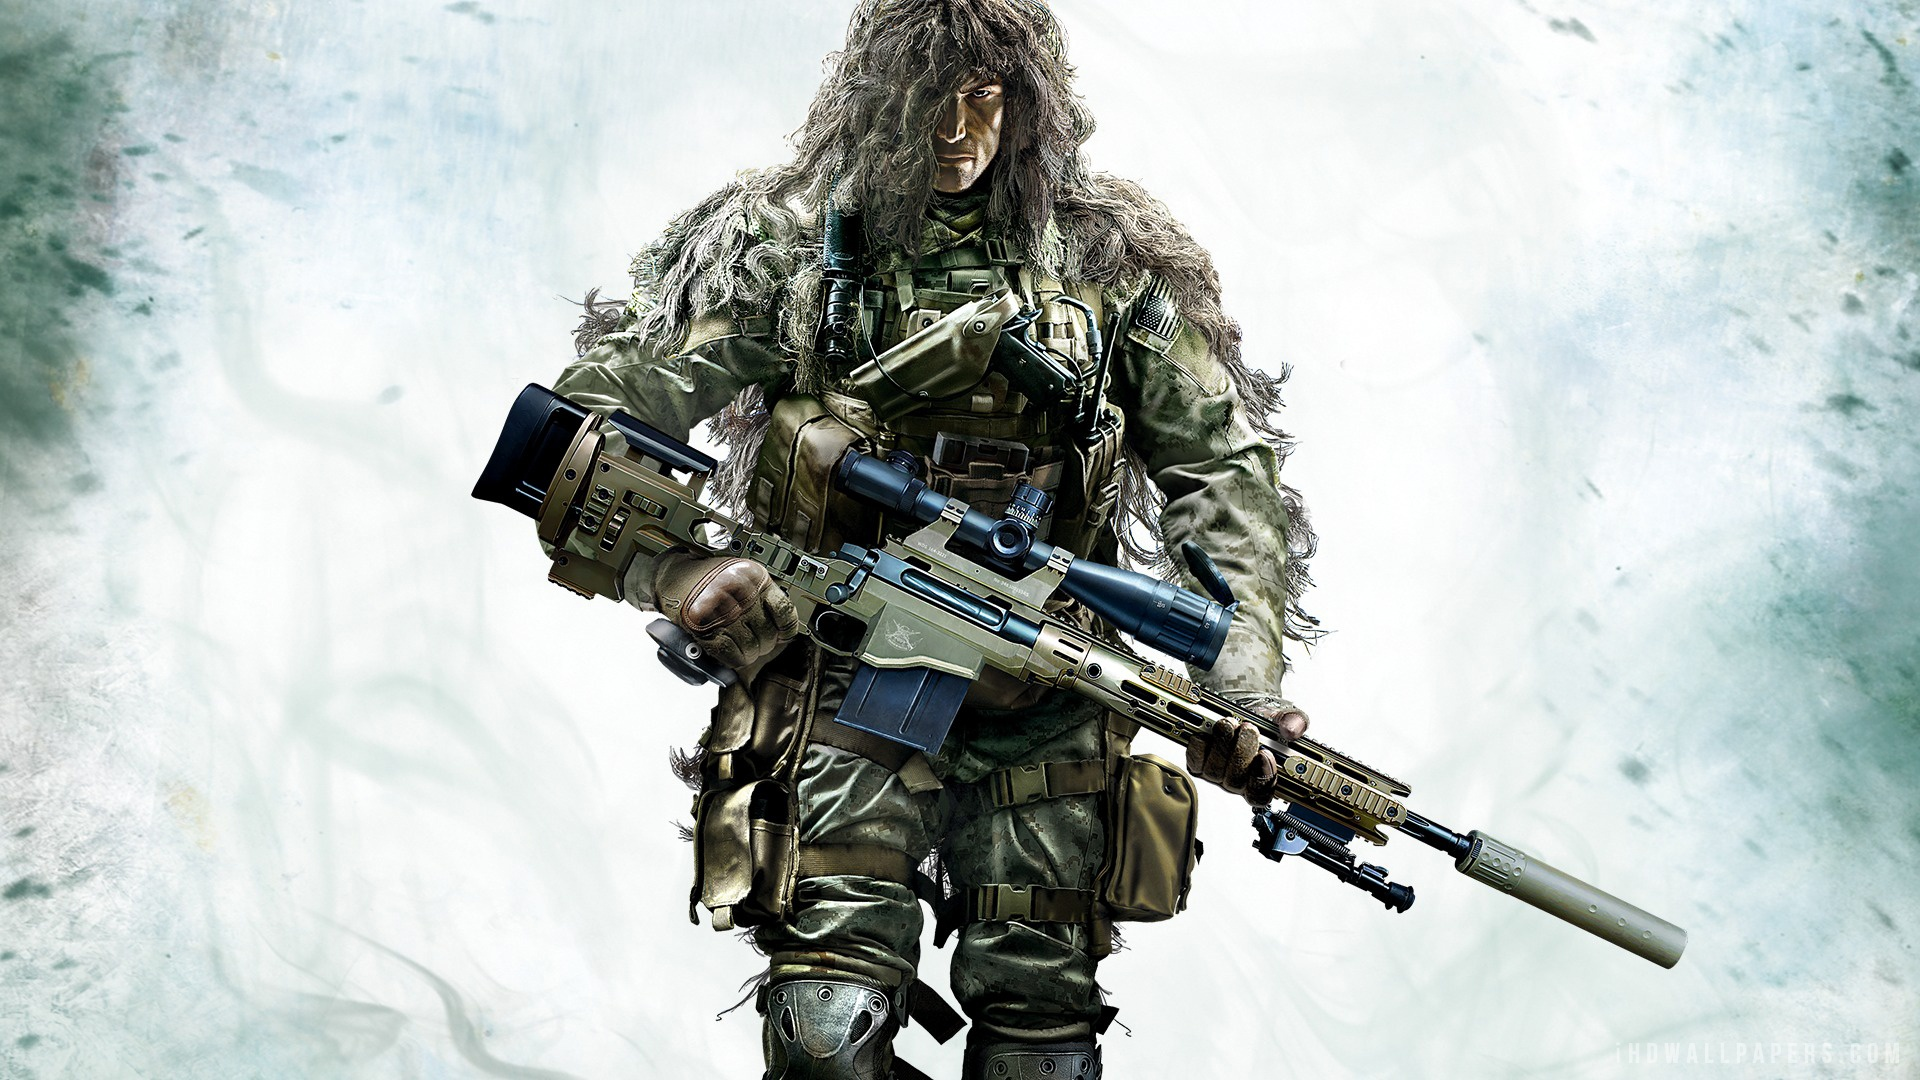 Sniper Ghost Warrior 2 Game HD Wallpaper   iHD Wallpapers 1920x1080